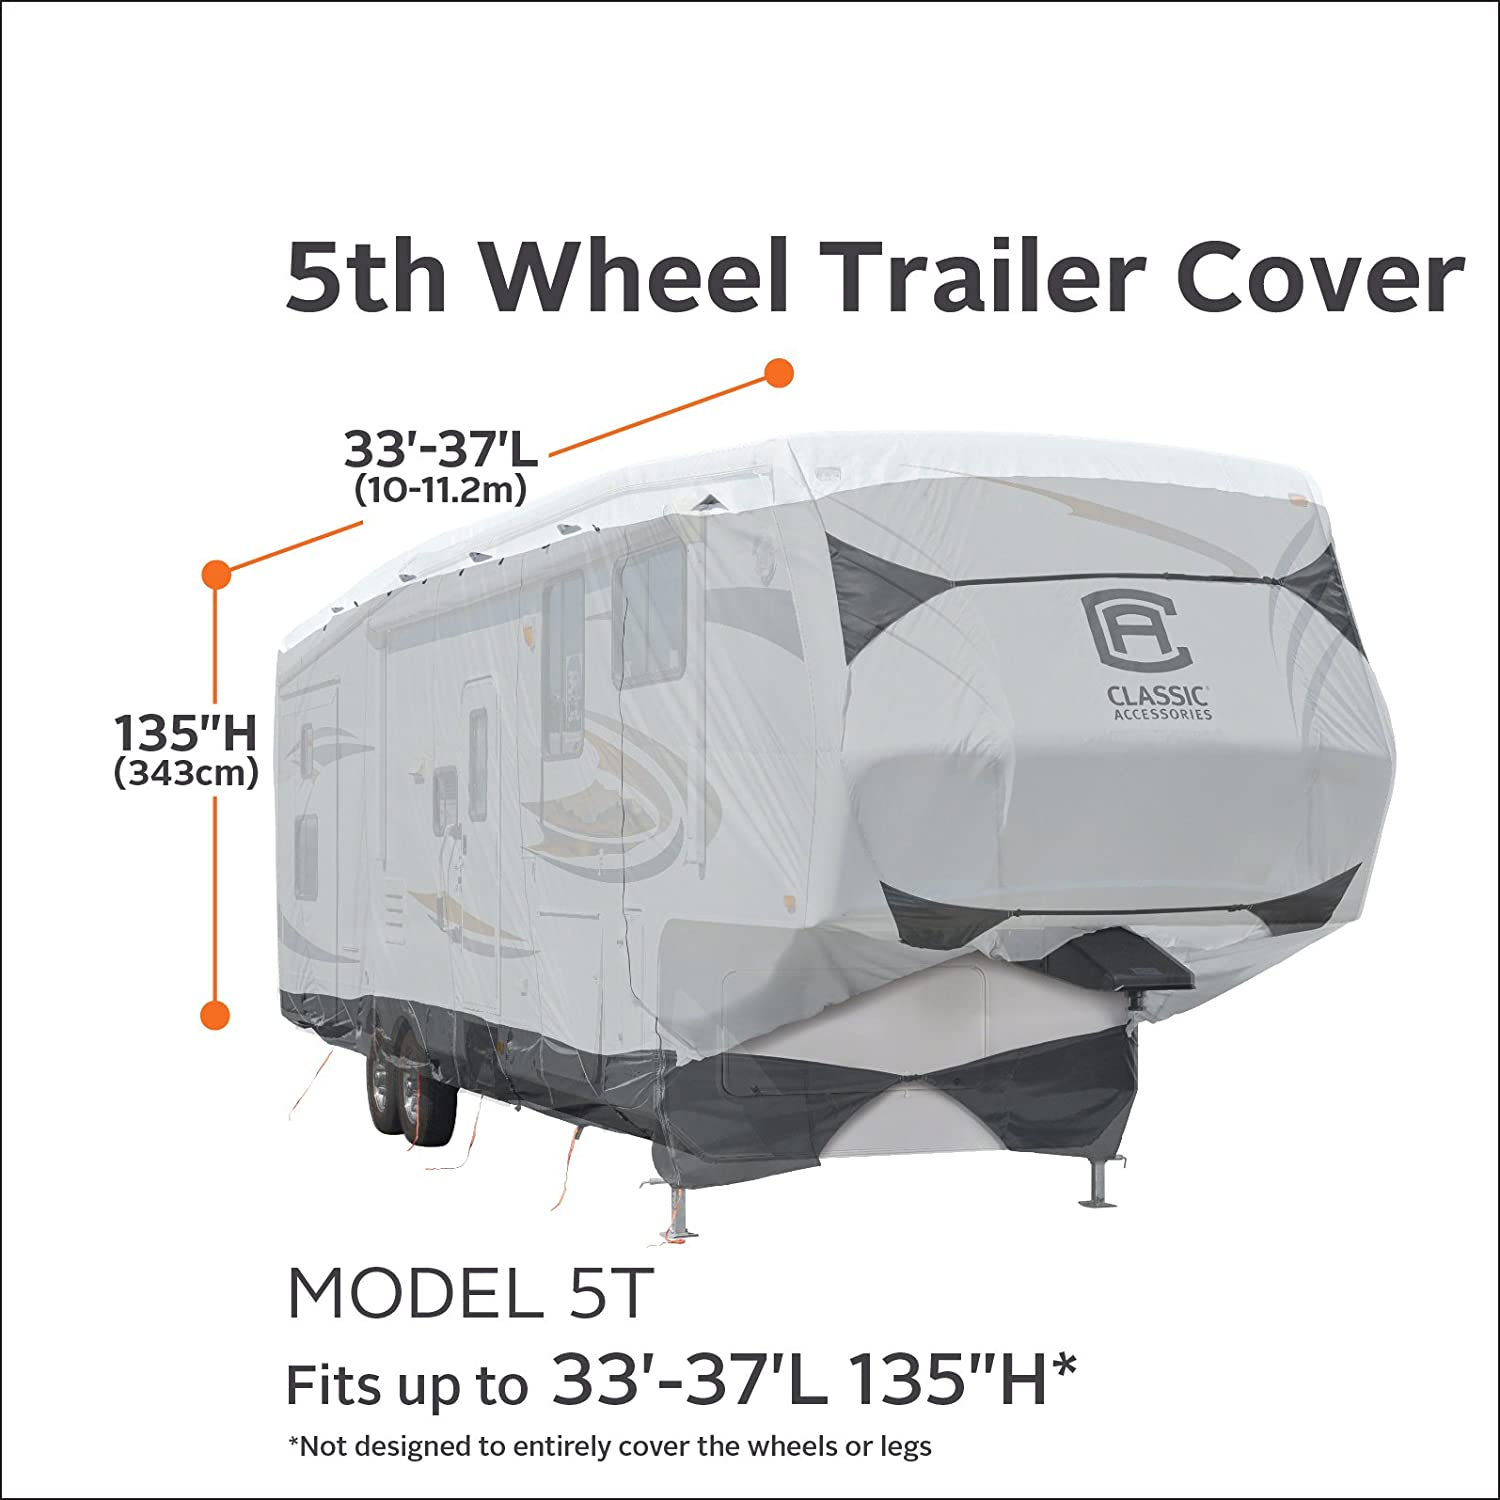 Classic Accessories SkyShield Heavy Duty 5th Wheel Trailer Cover 135 Max H For 33-37 L